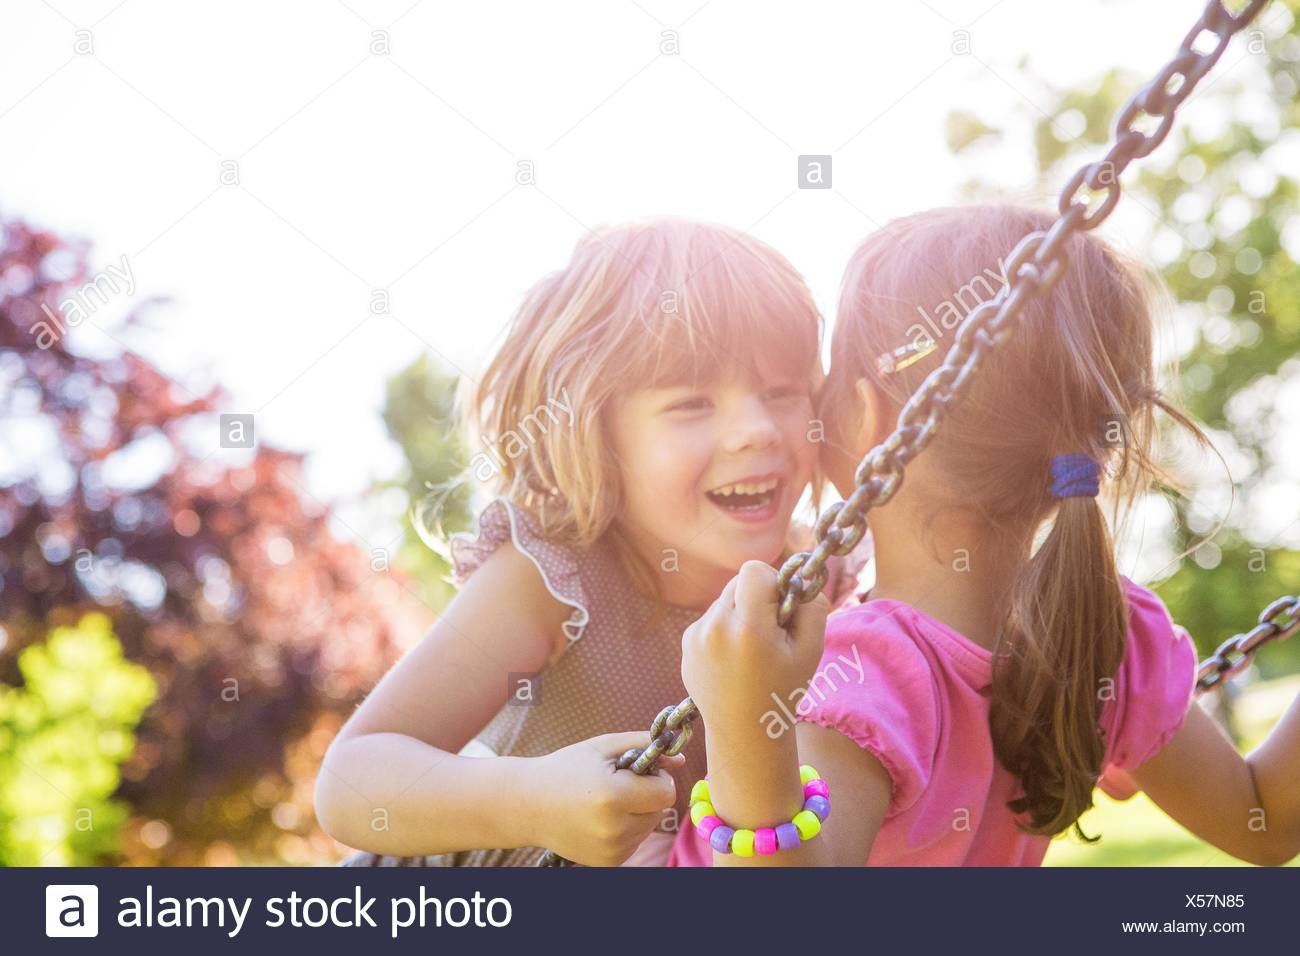 Two young girls swinging face to face on park swing - Stock Image